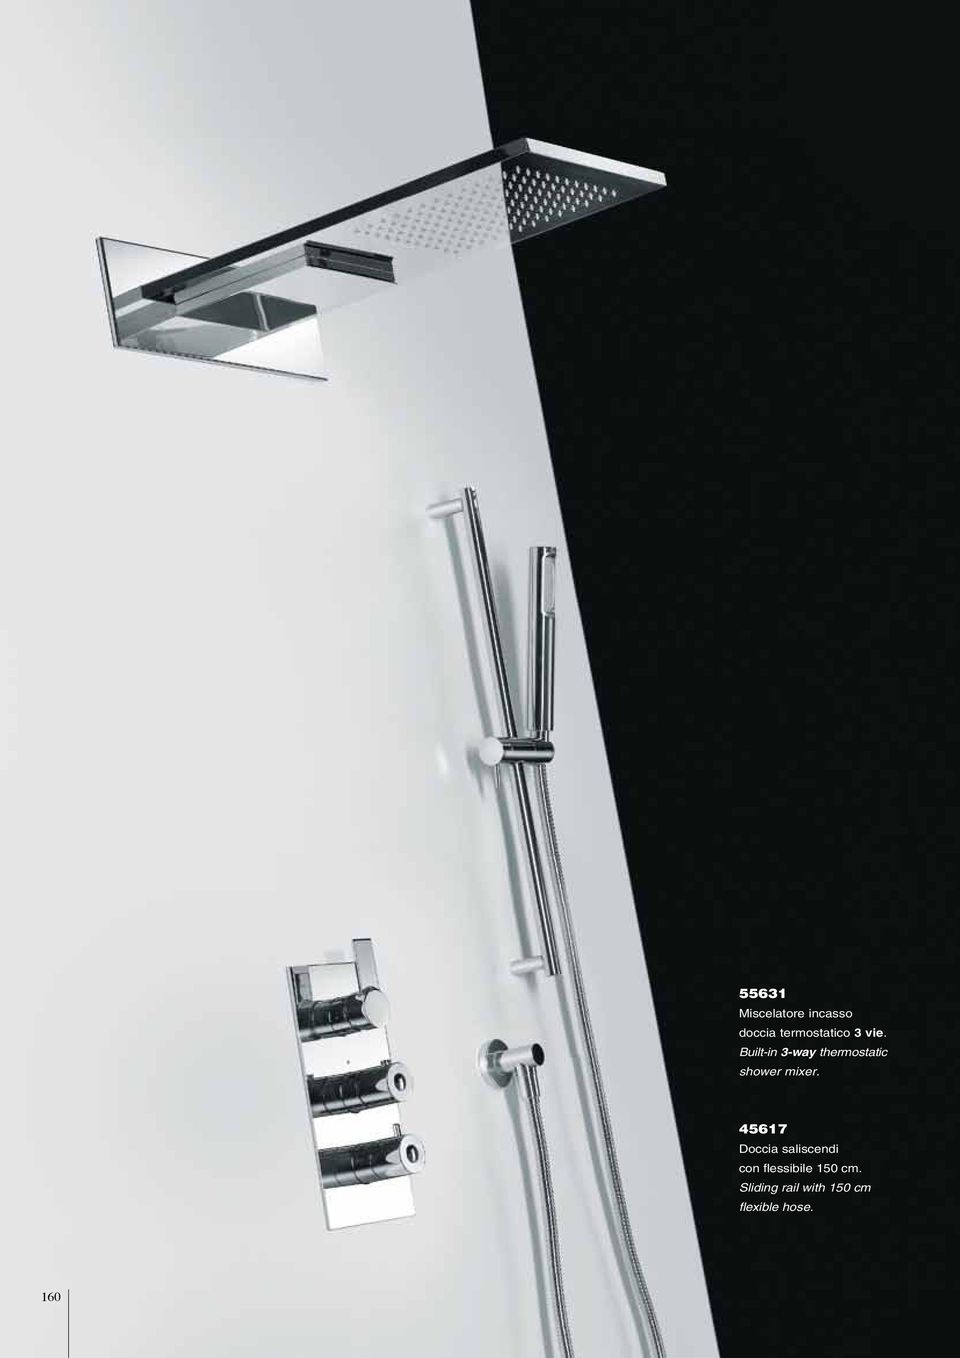 Built-in 3-way thermostatic shower mixer.